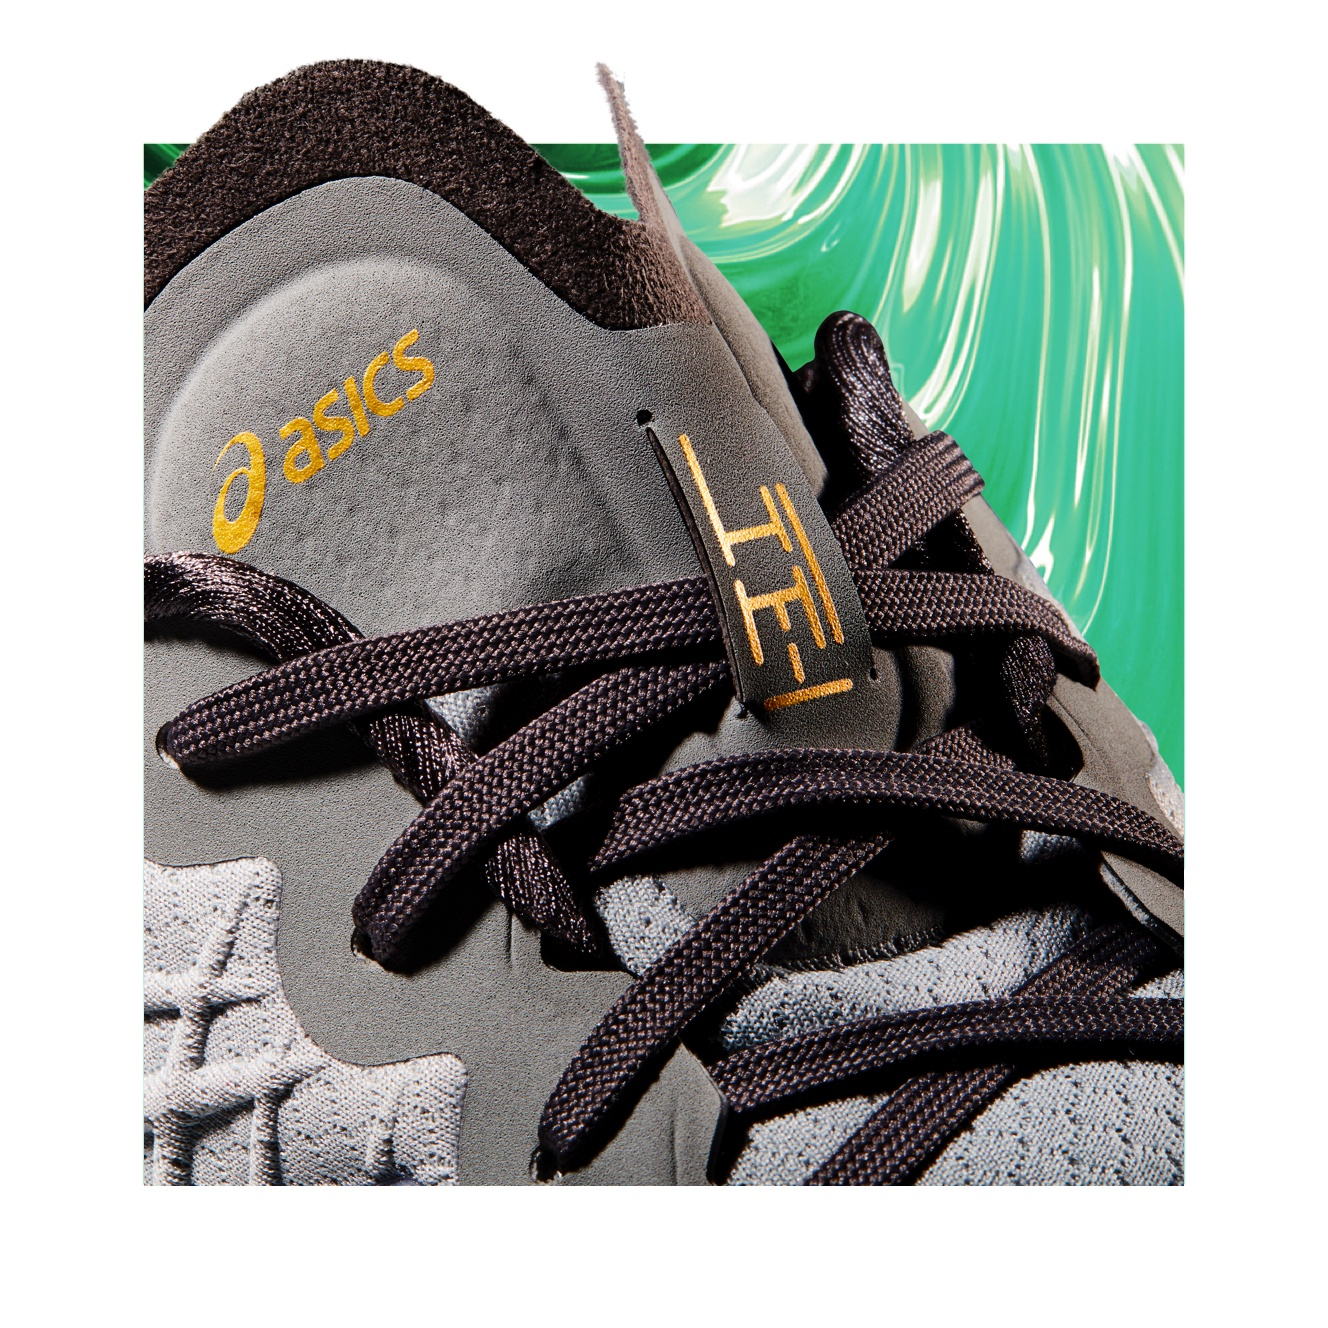 QI Green Colorway laces/ tongue of shoe